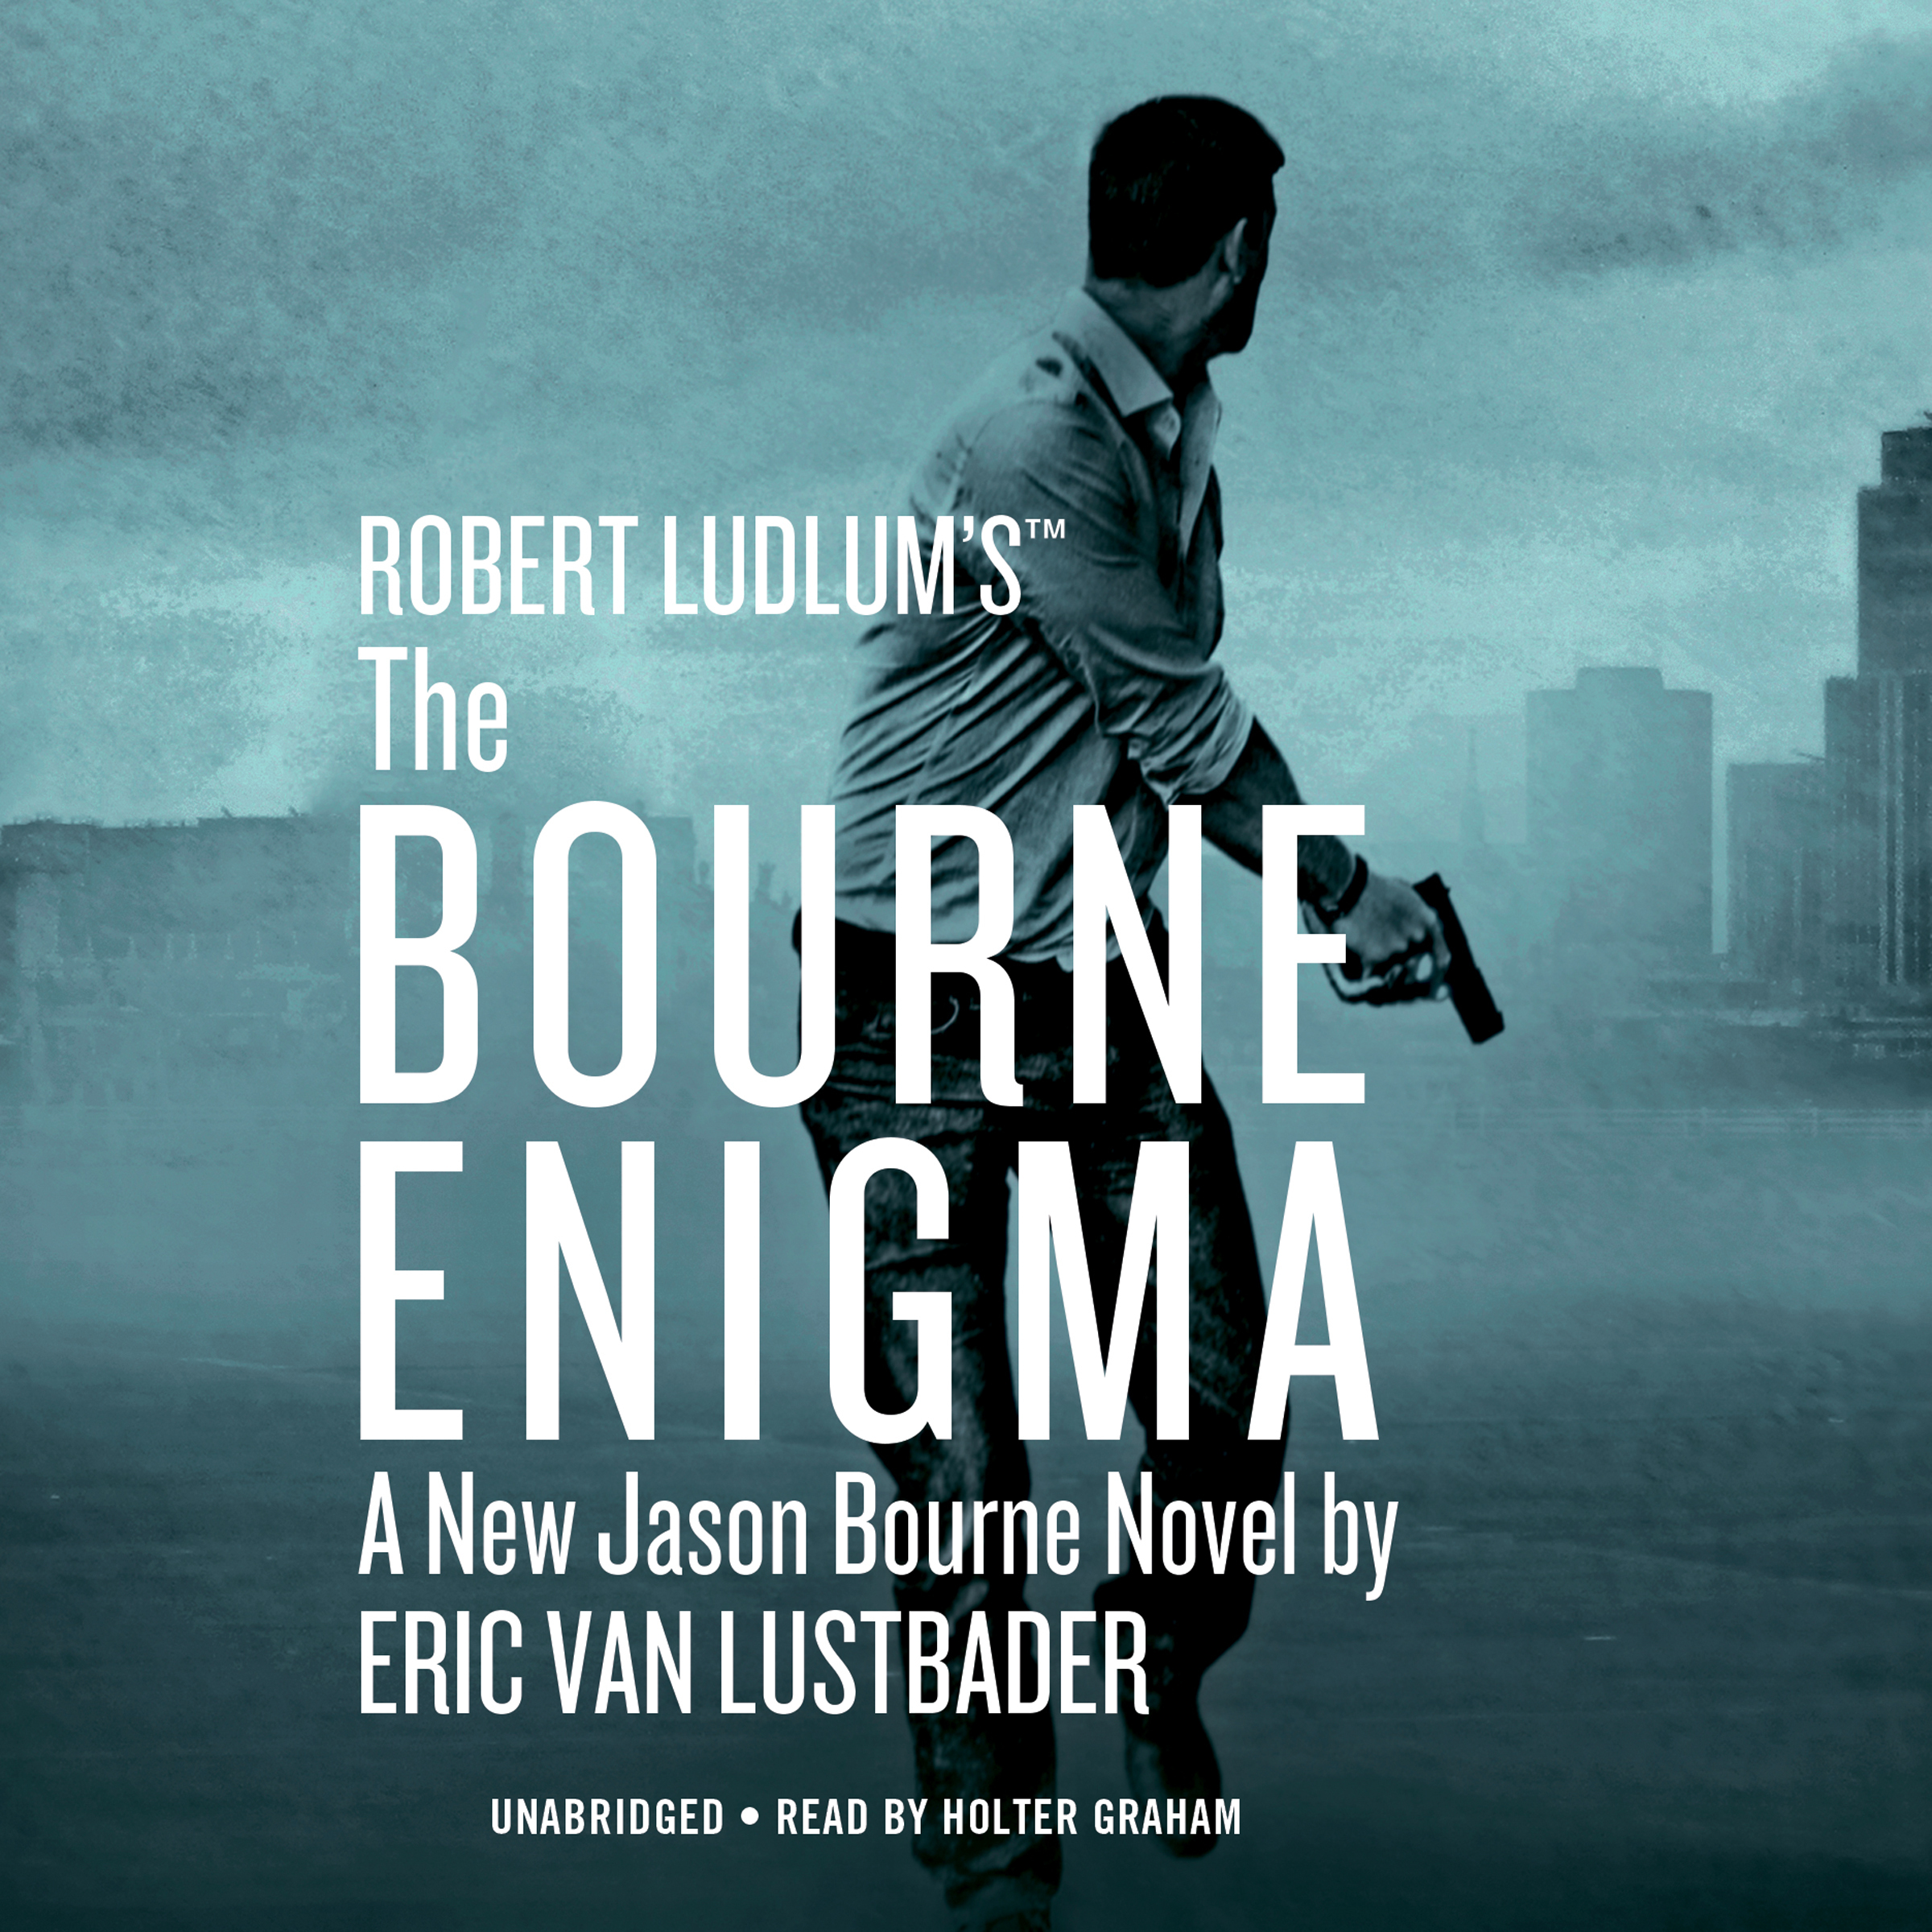 Printable Robert Ludlum's ™ The Bourne Enigma Audiobook Cover Art